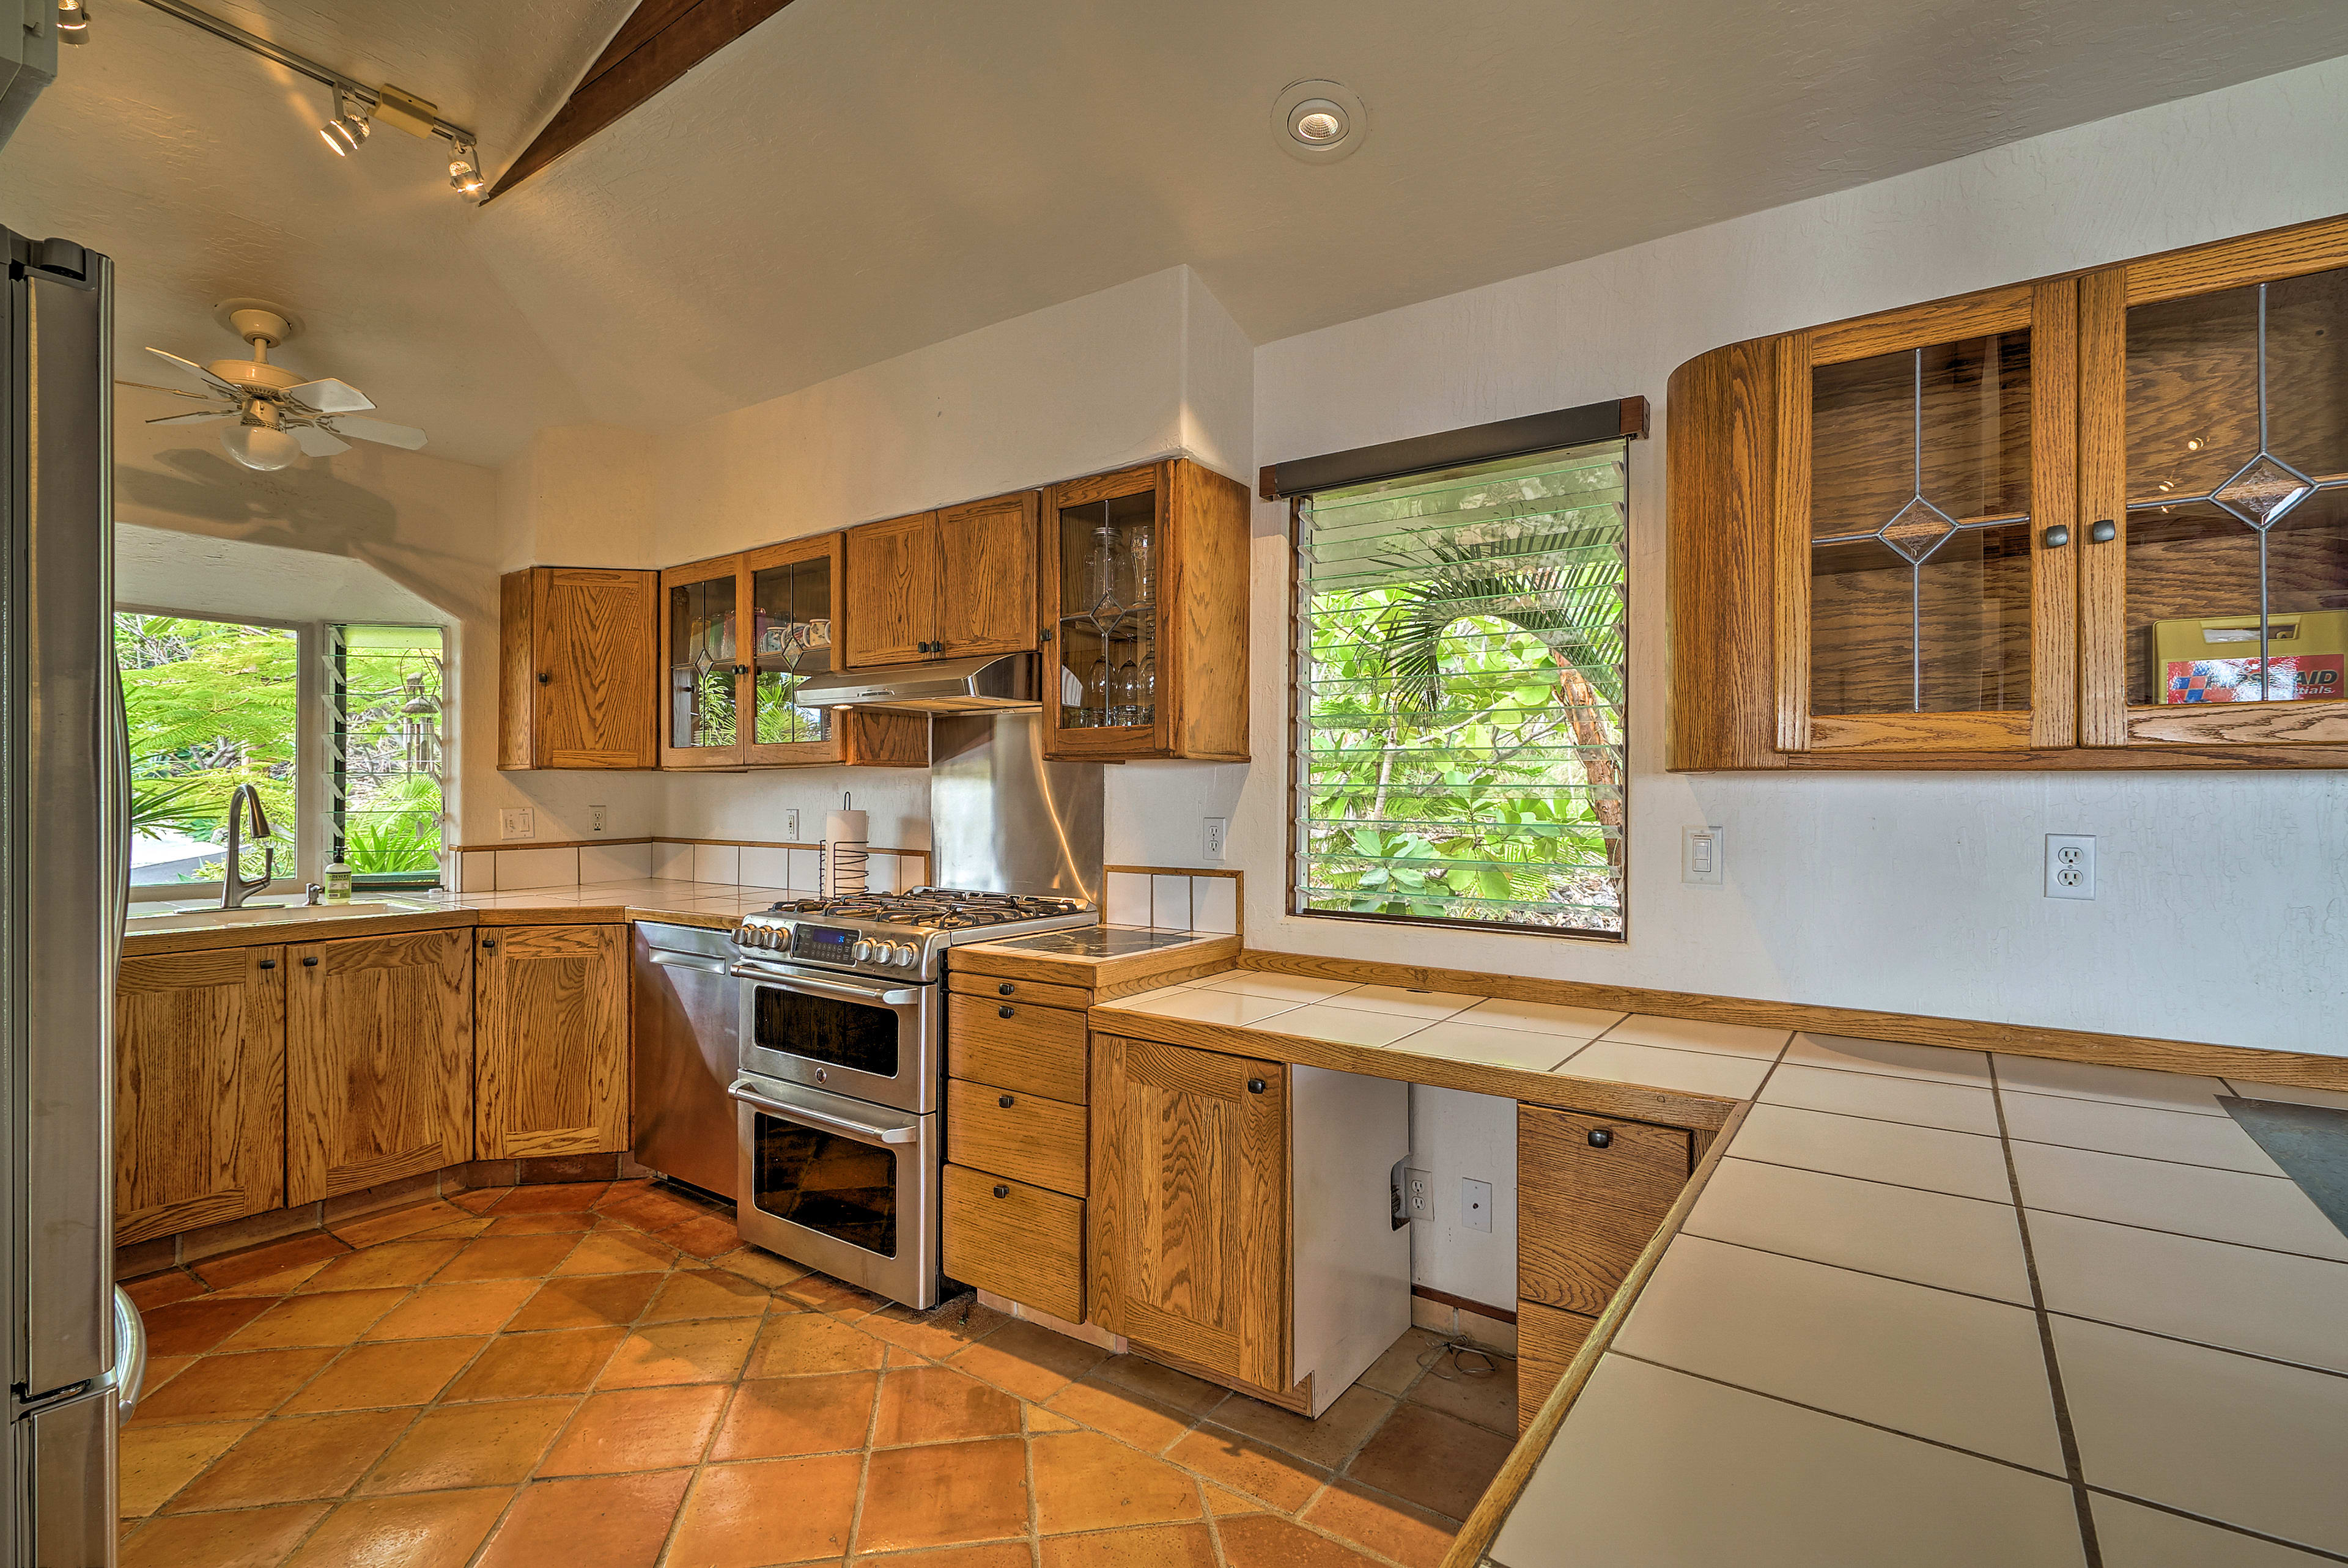 With natural wood elements, you'll love the fully equipped kitchen.